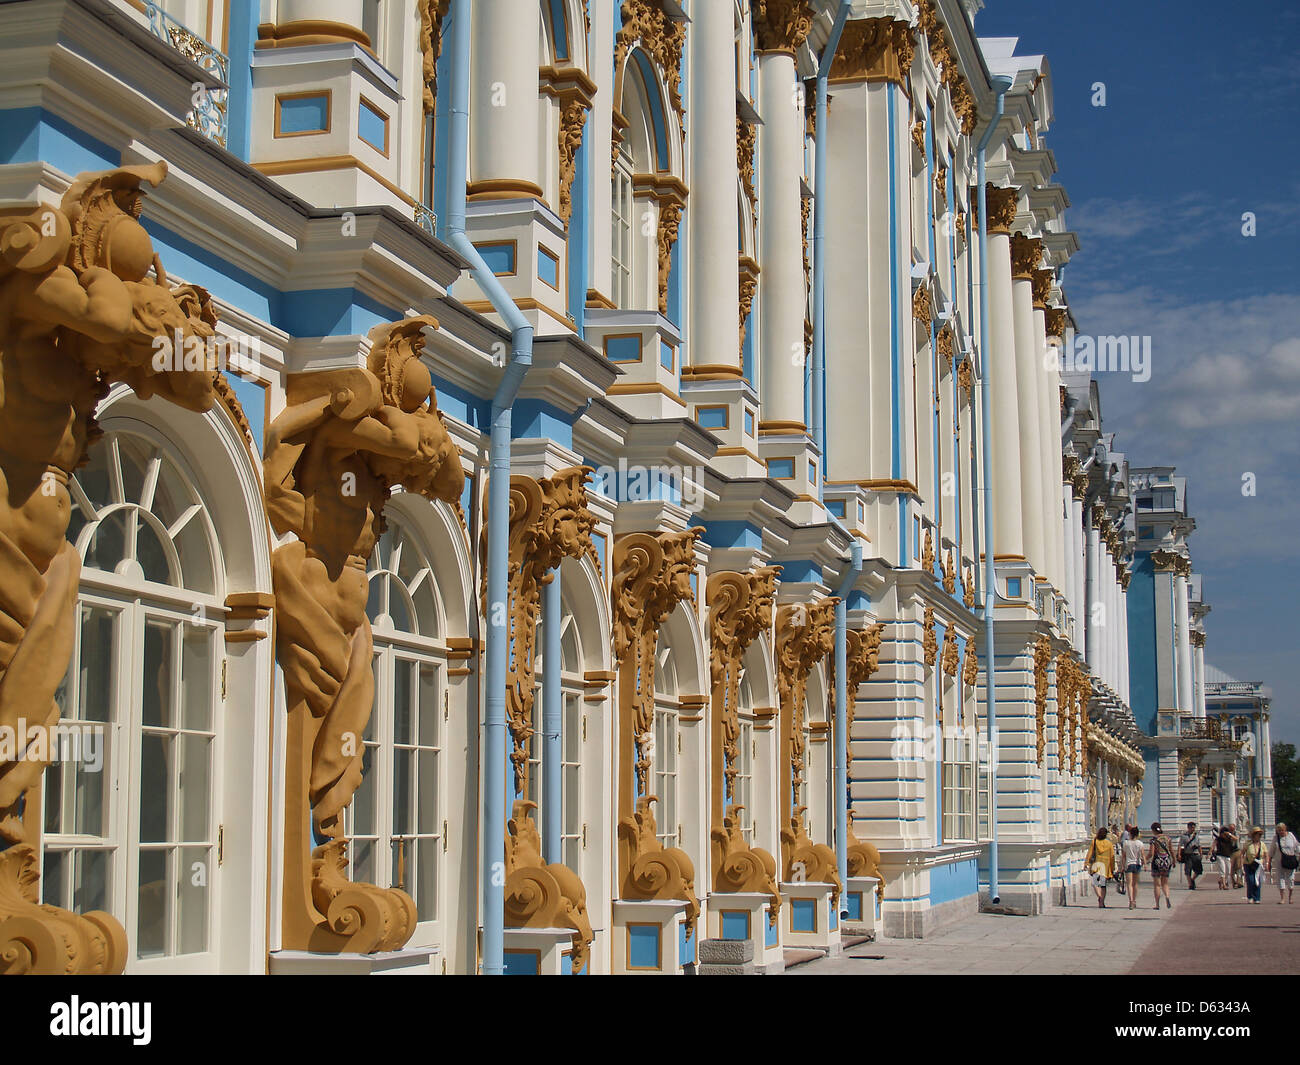 Exterior of Catherine Palace at Tsarskoe Selo,Russia - Stock Image